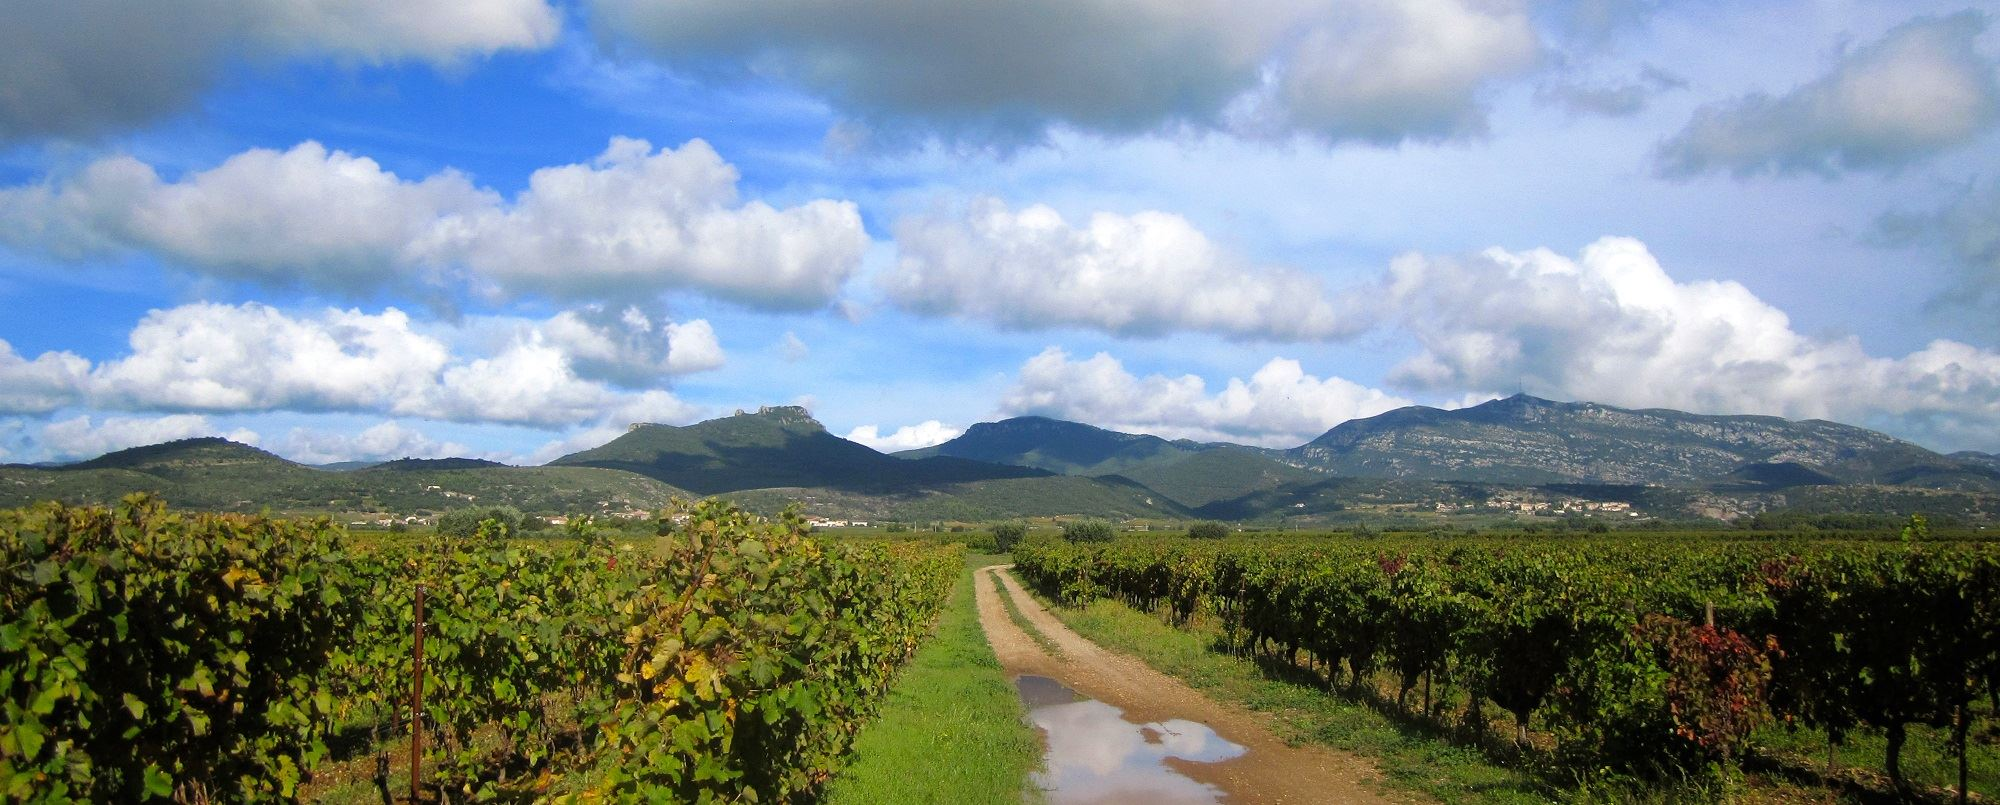 All-Day discovery tour: Pic Saint-Loup, wine and olive tour